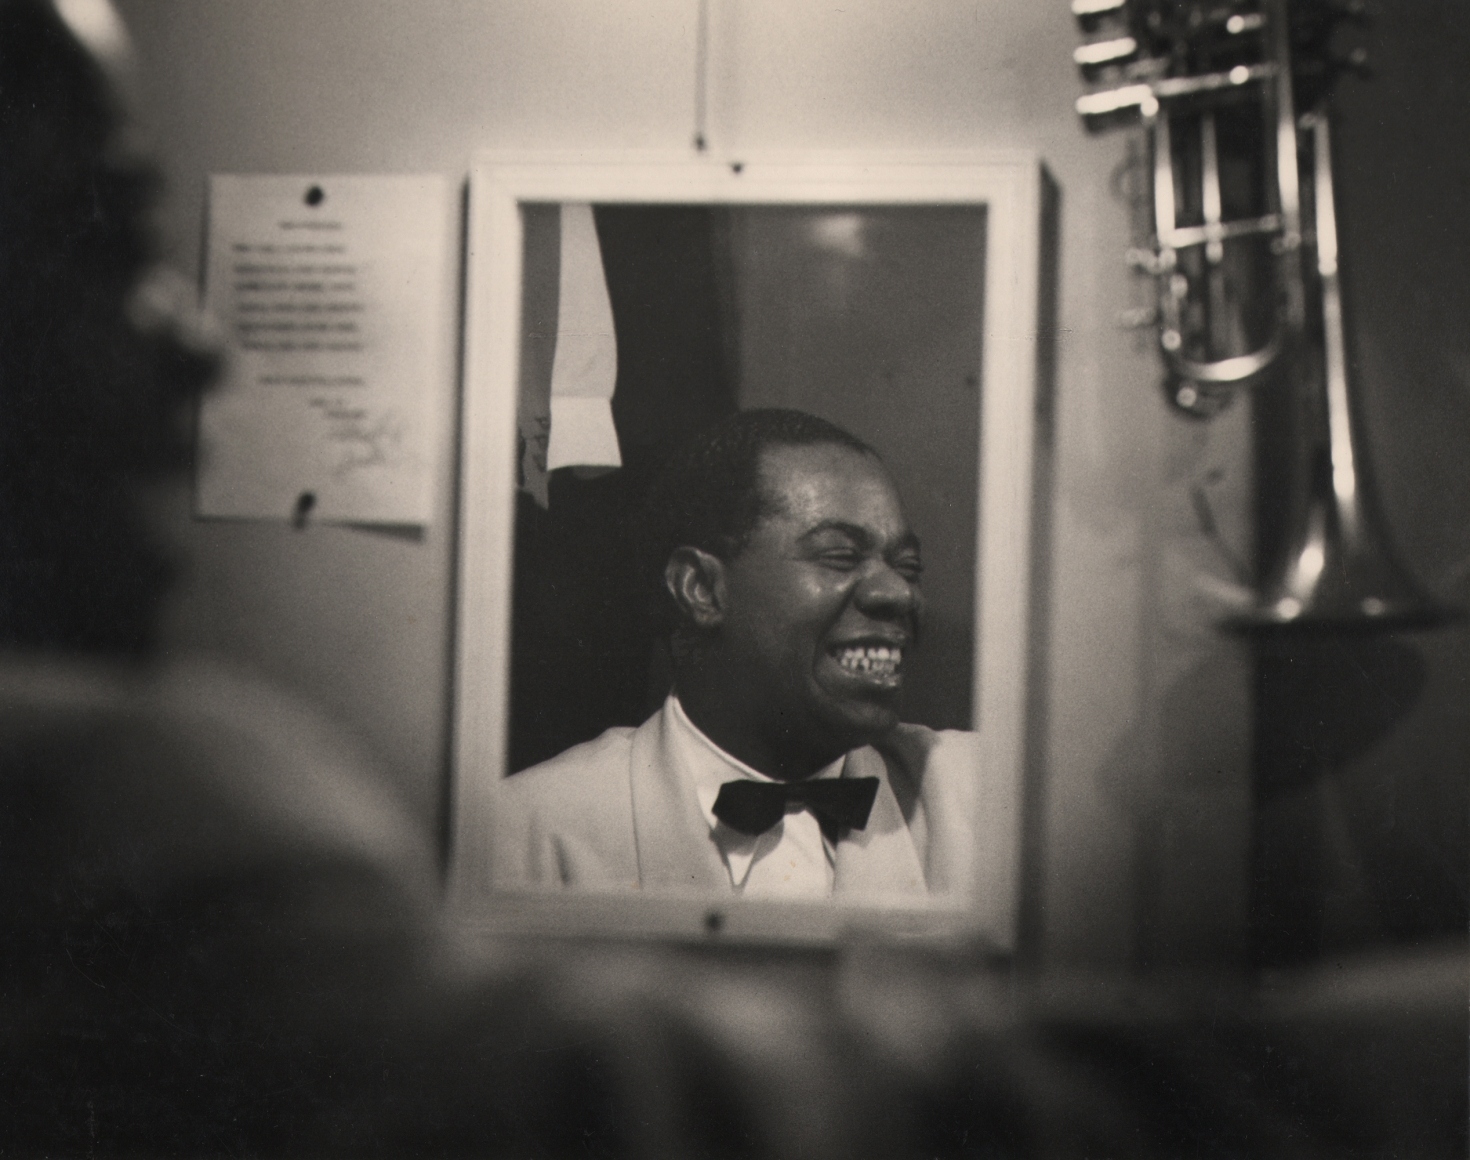 Bob Willoughby, Louis Armstrong, 1950. Subject is seen smiling in a mirror reflection, head turned to the right.